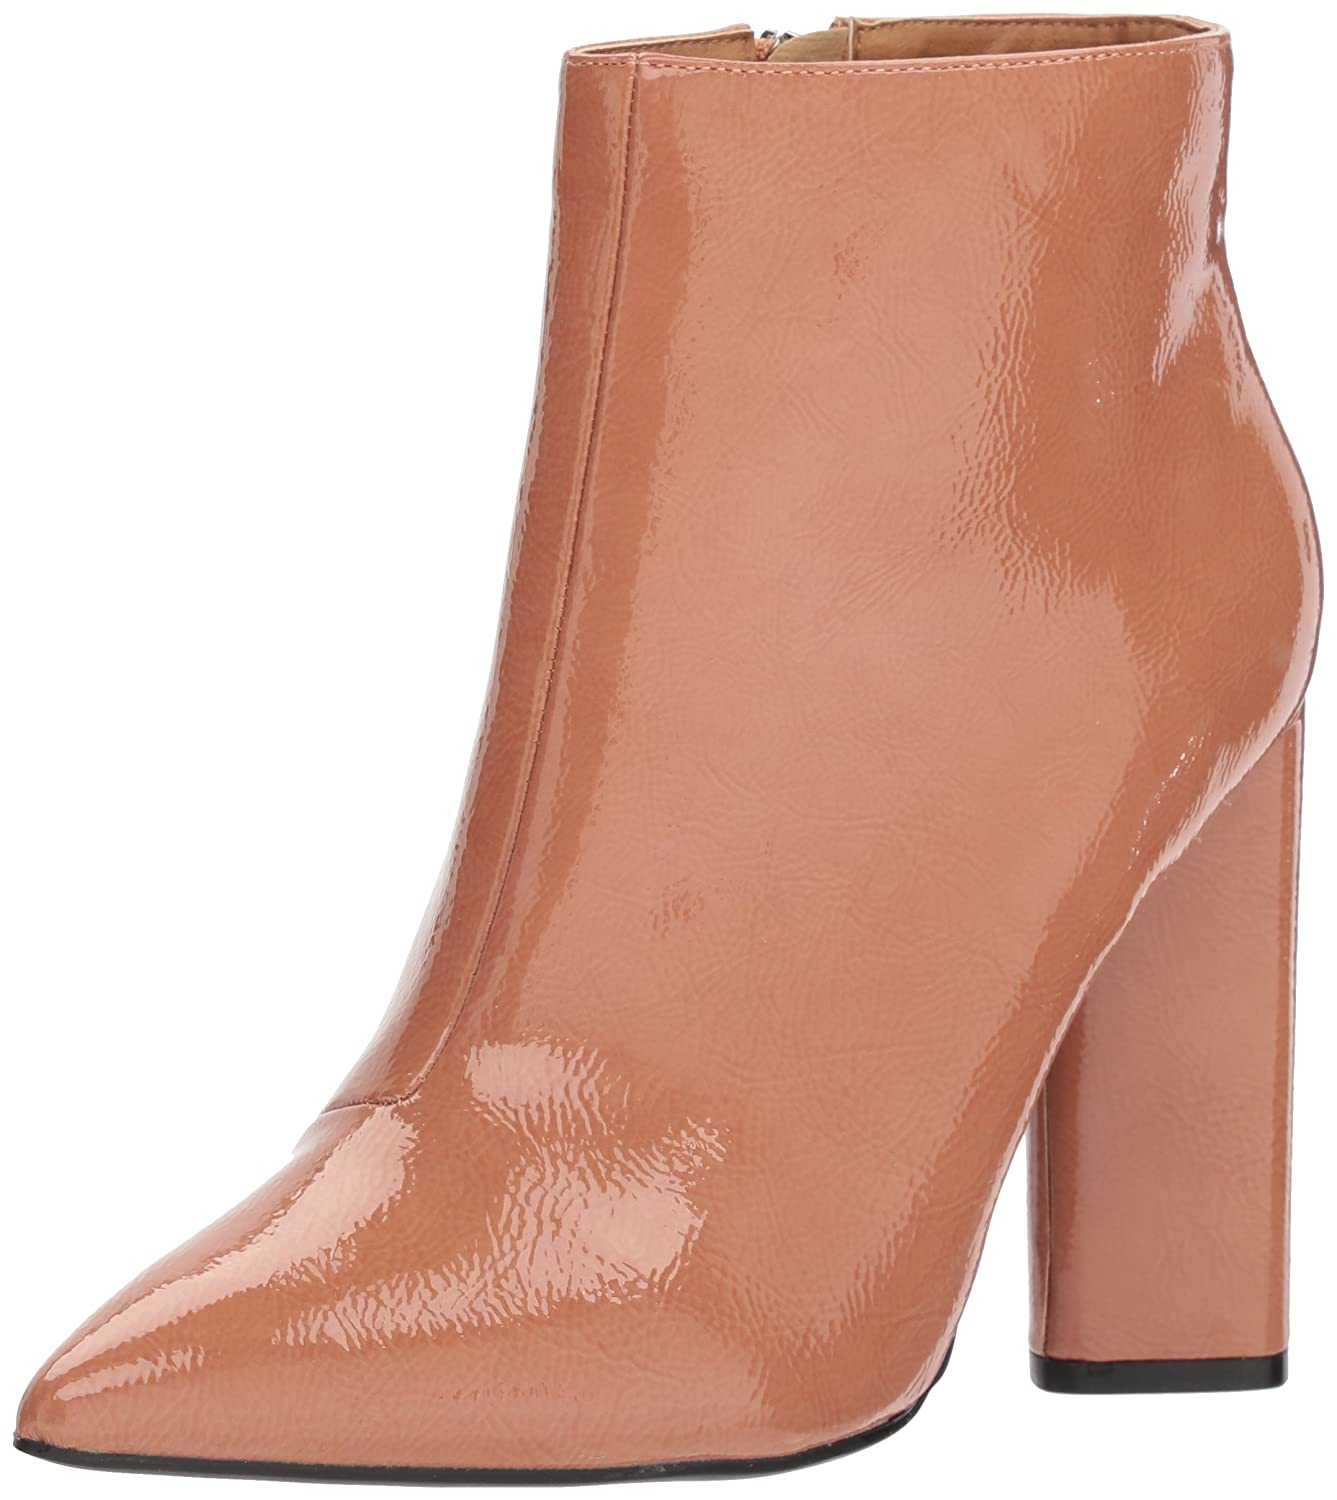 4ea3bccb741 Qupid Women's Pointy Toe Bootie Ankle Boot